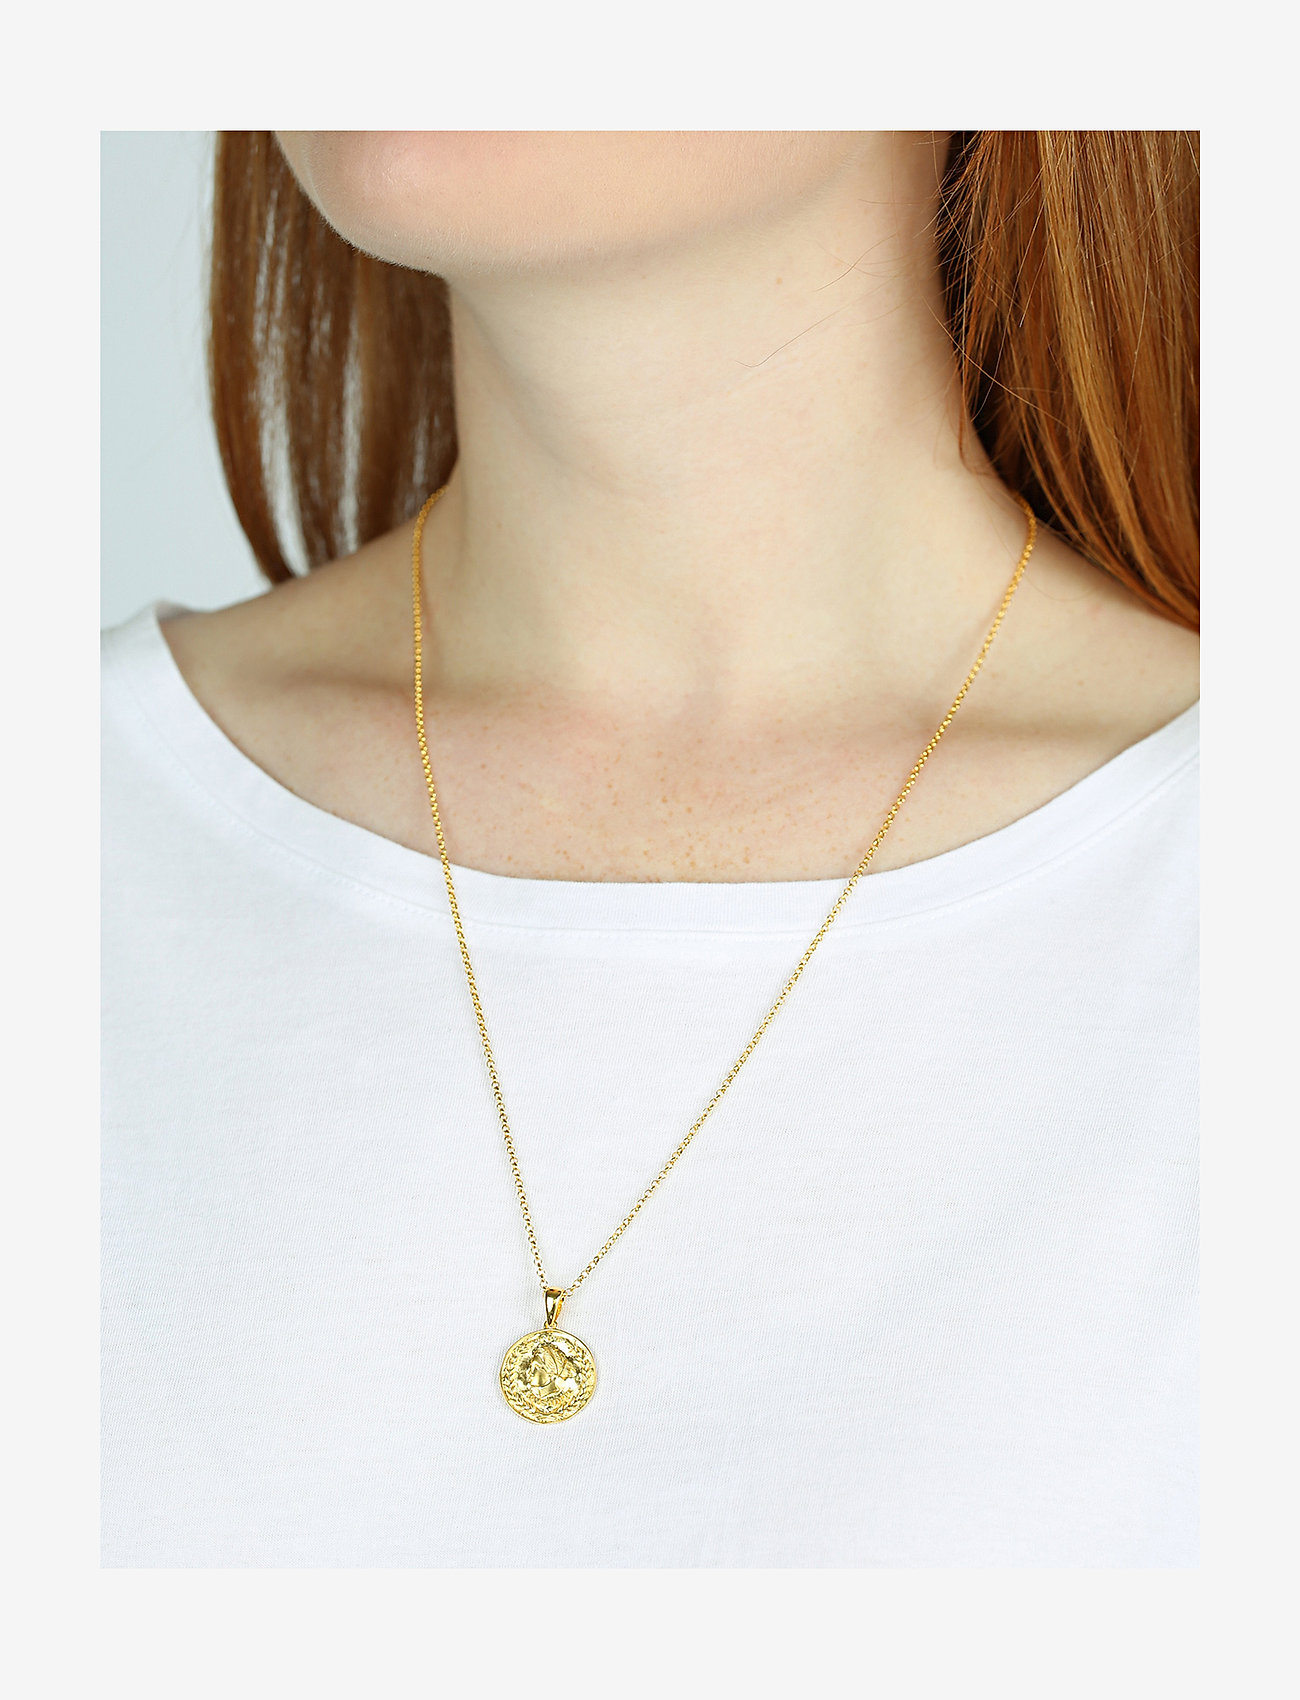 Syster P - Beaches Aphrodite Necklace Gold - kettingen met hanger - gold - 1